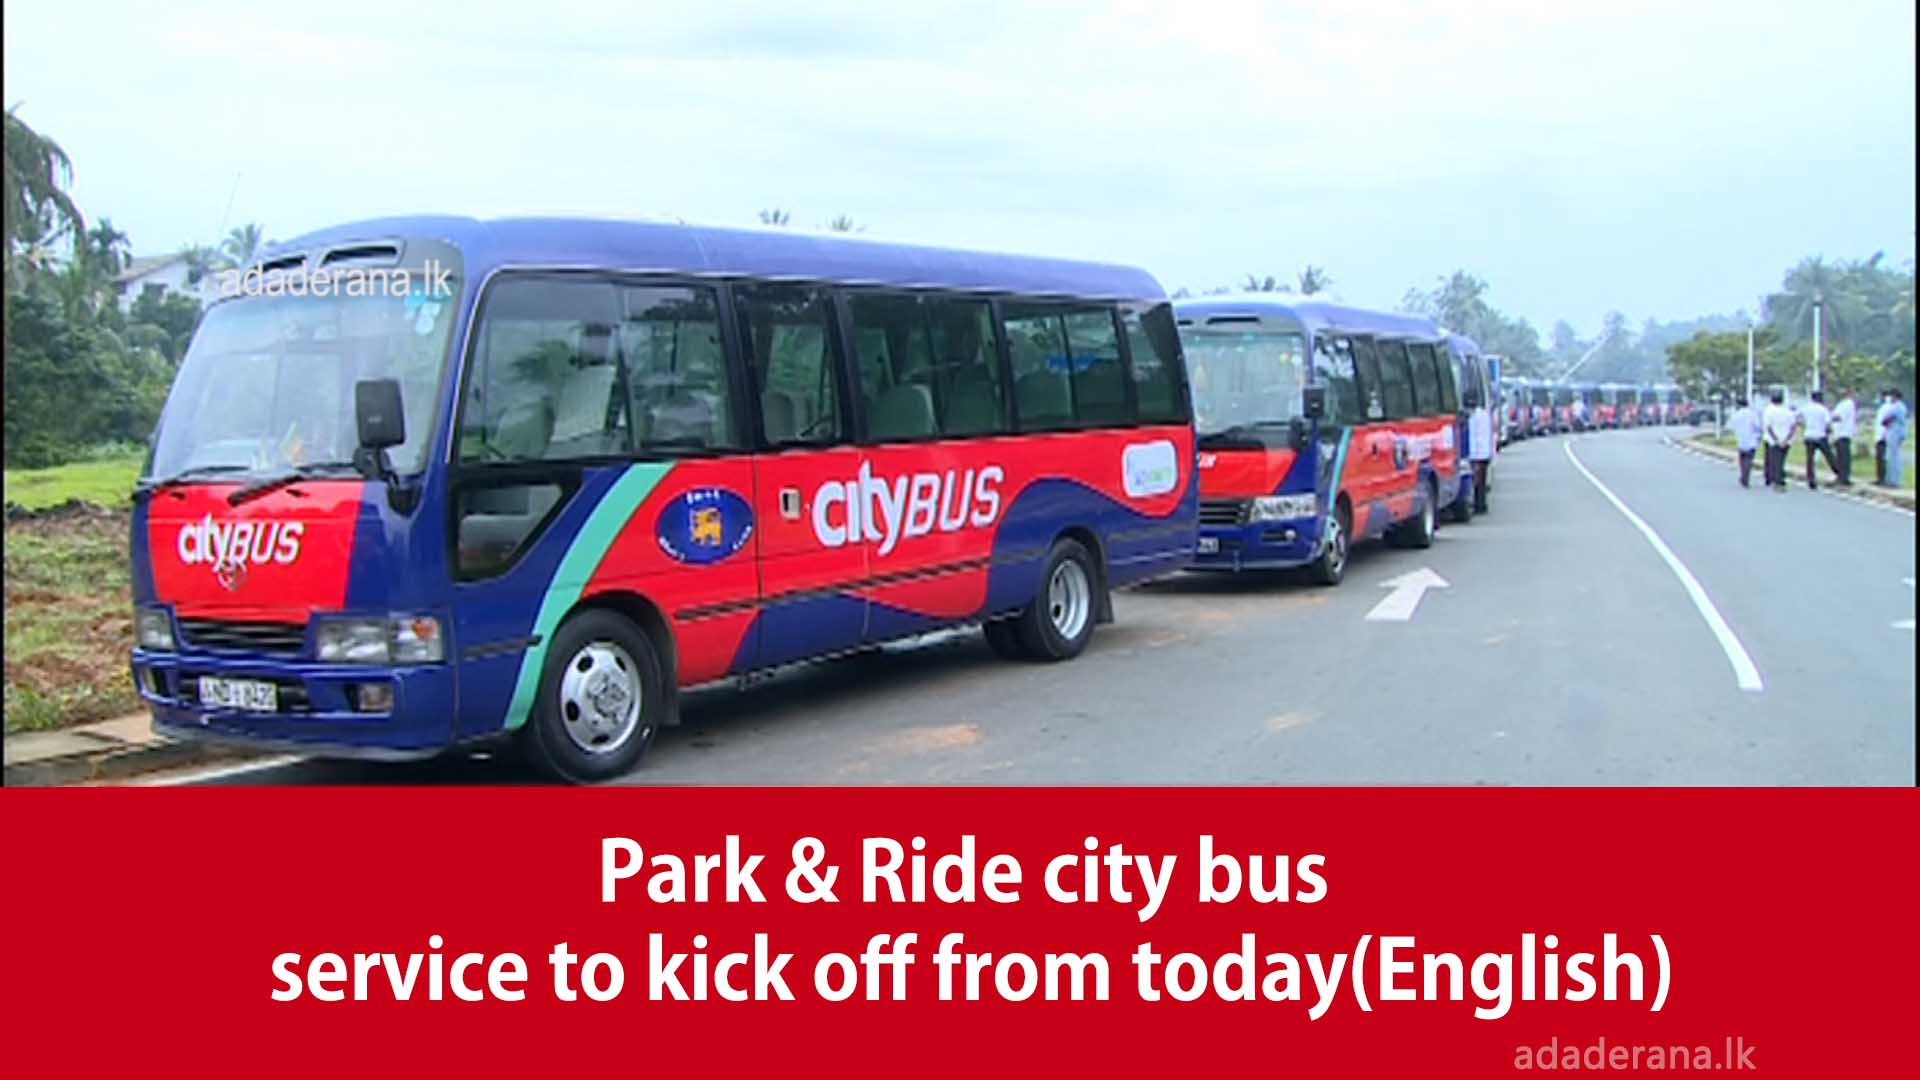 Park & Ride city bus service to kick off from today(English)